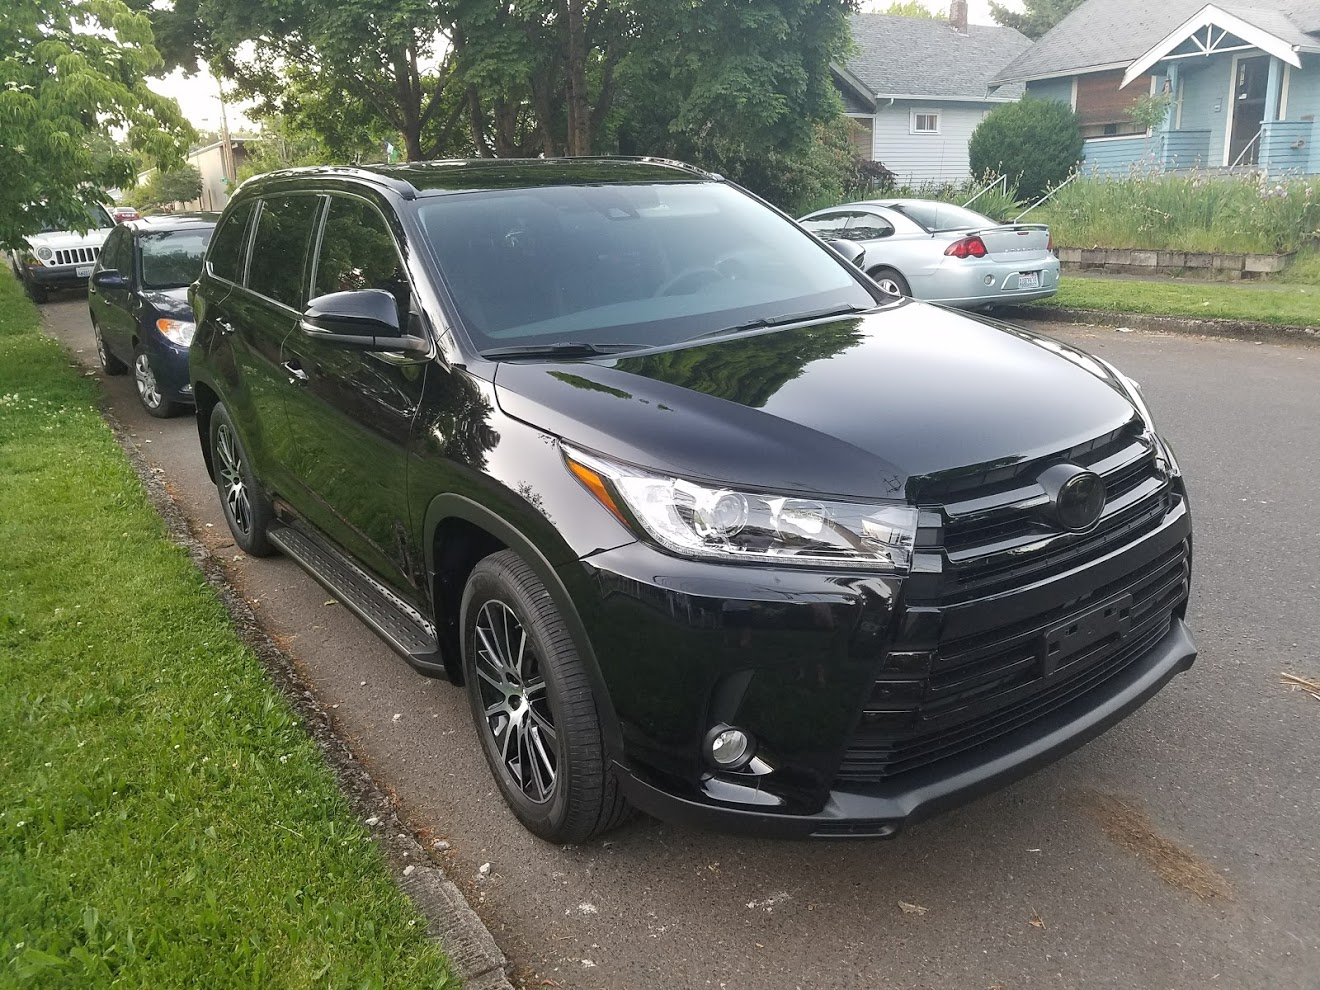 2017 toyota highlander prices paid page 2 car forums at. Black Bedroom Furniture Sets. Home Design Ideas